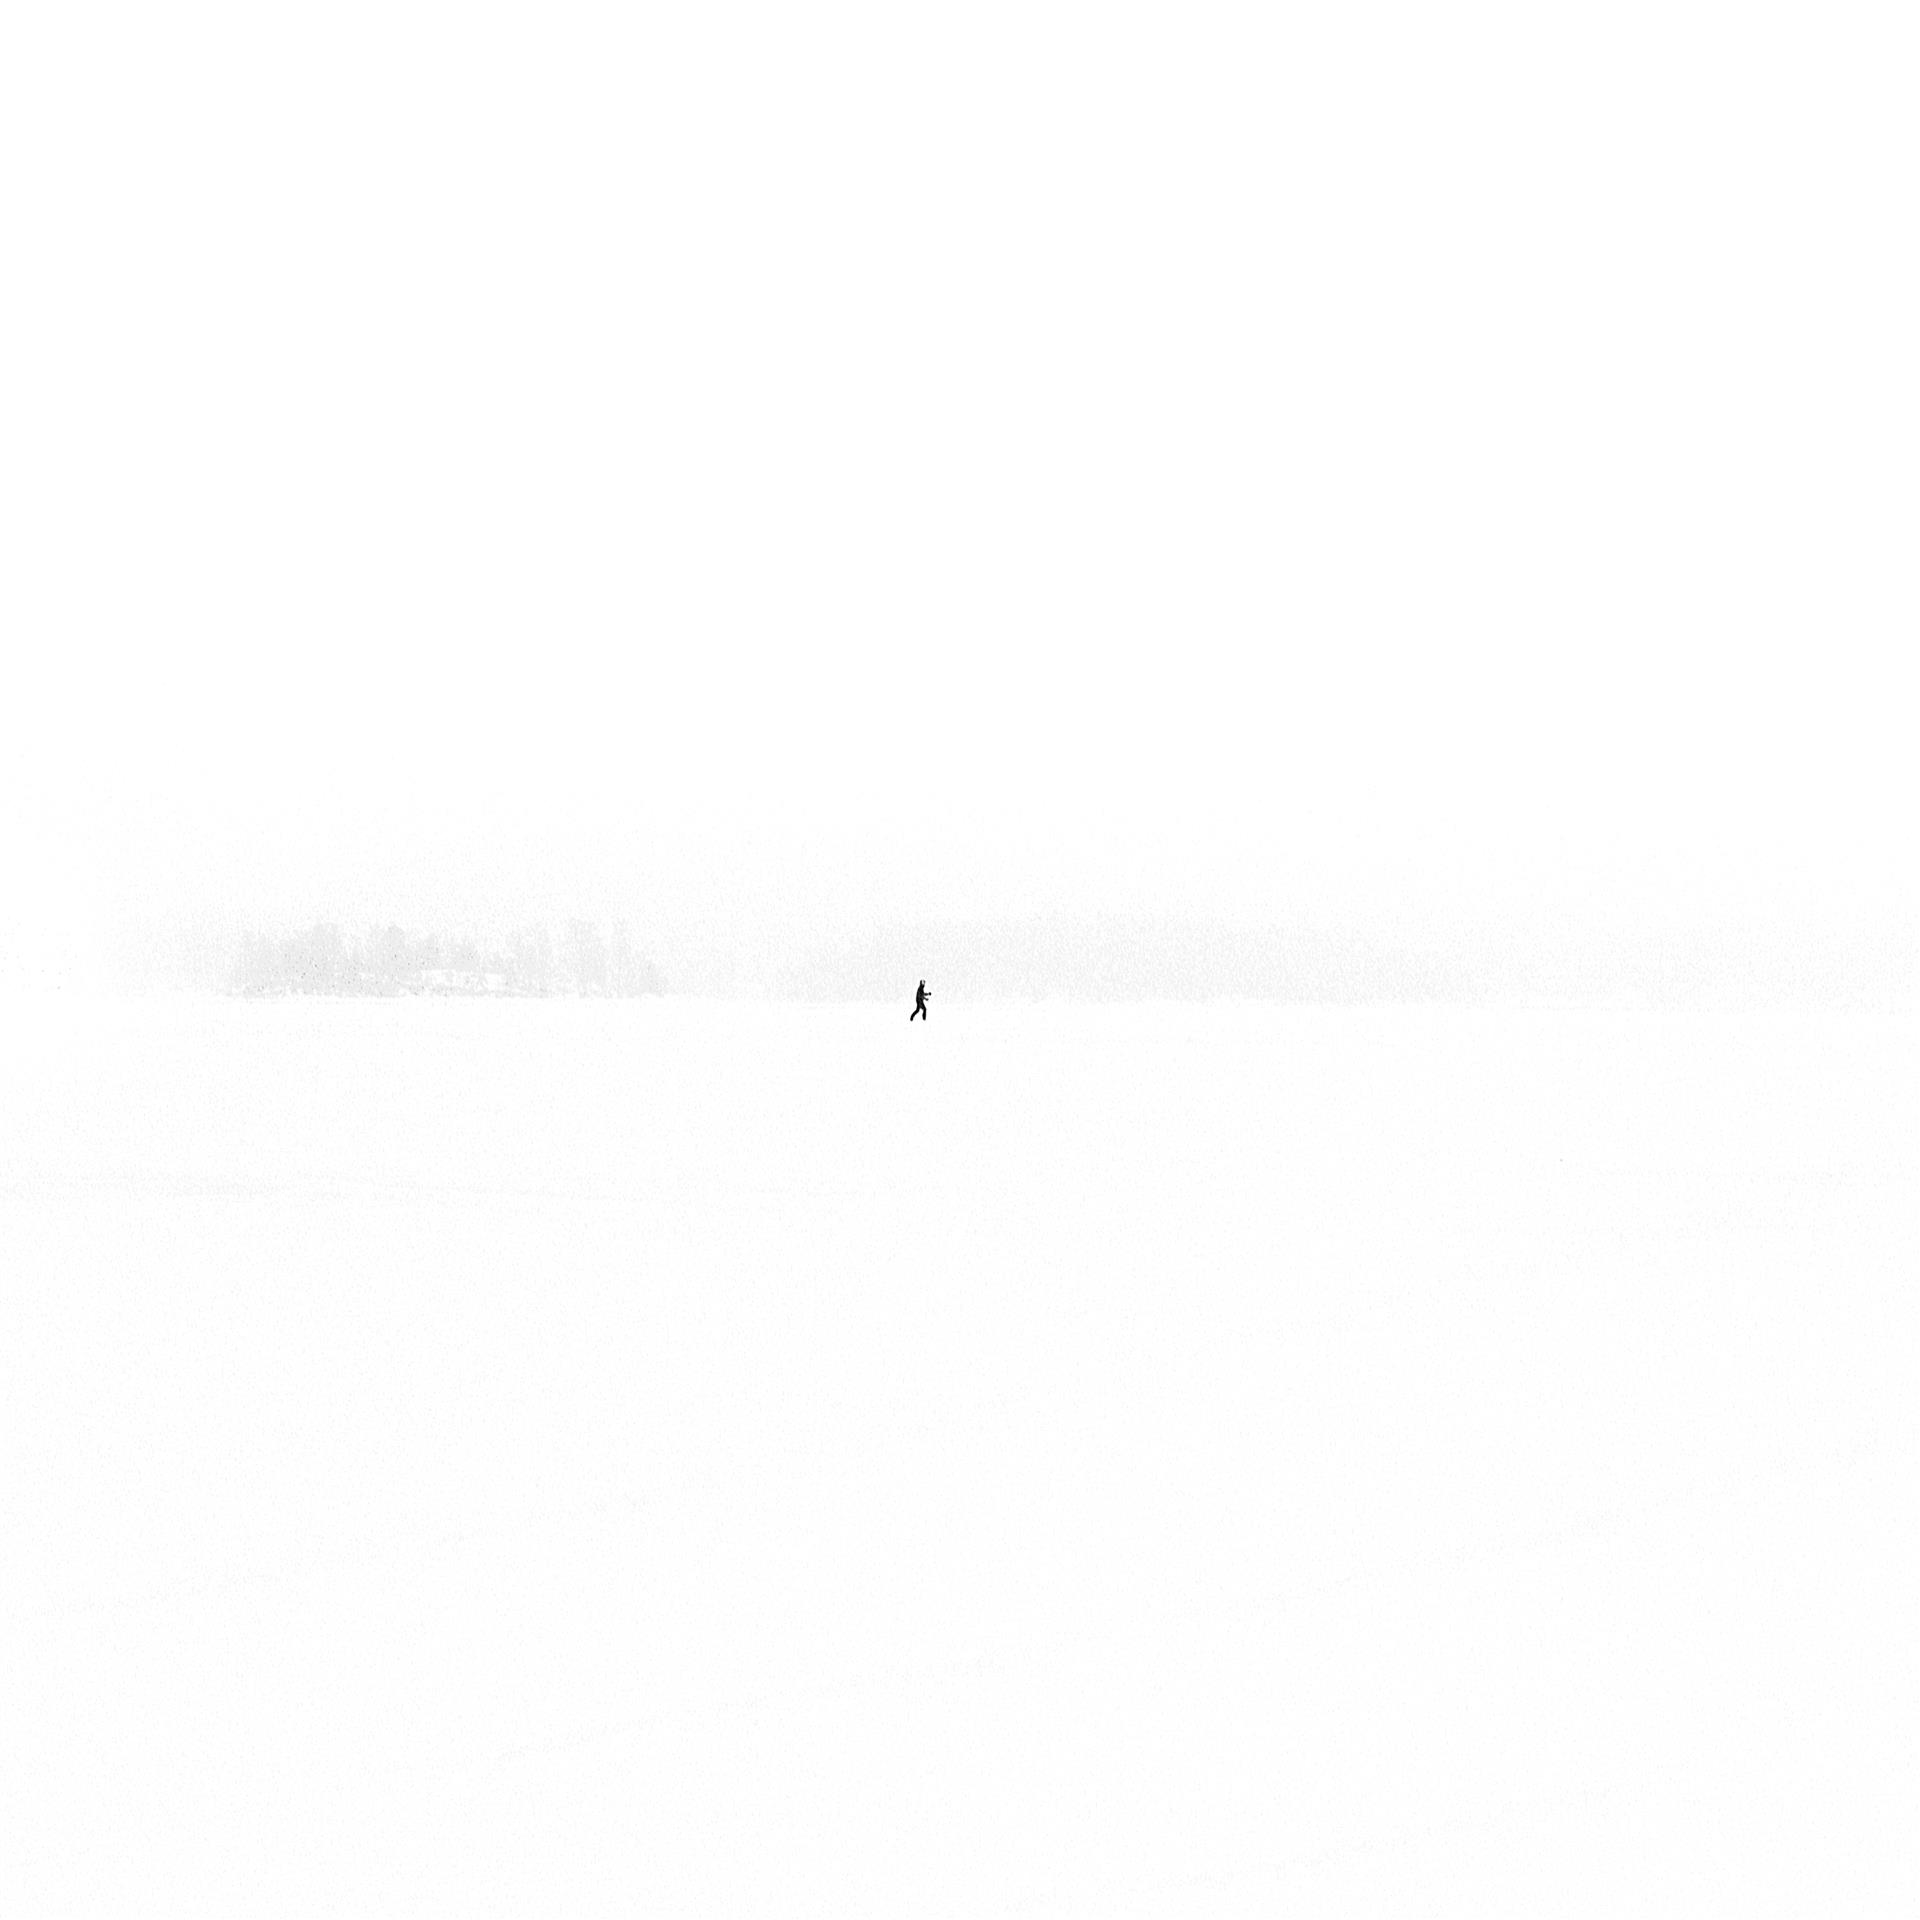 © Ari Jaaksi • Honorable Mention